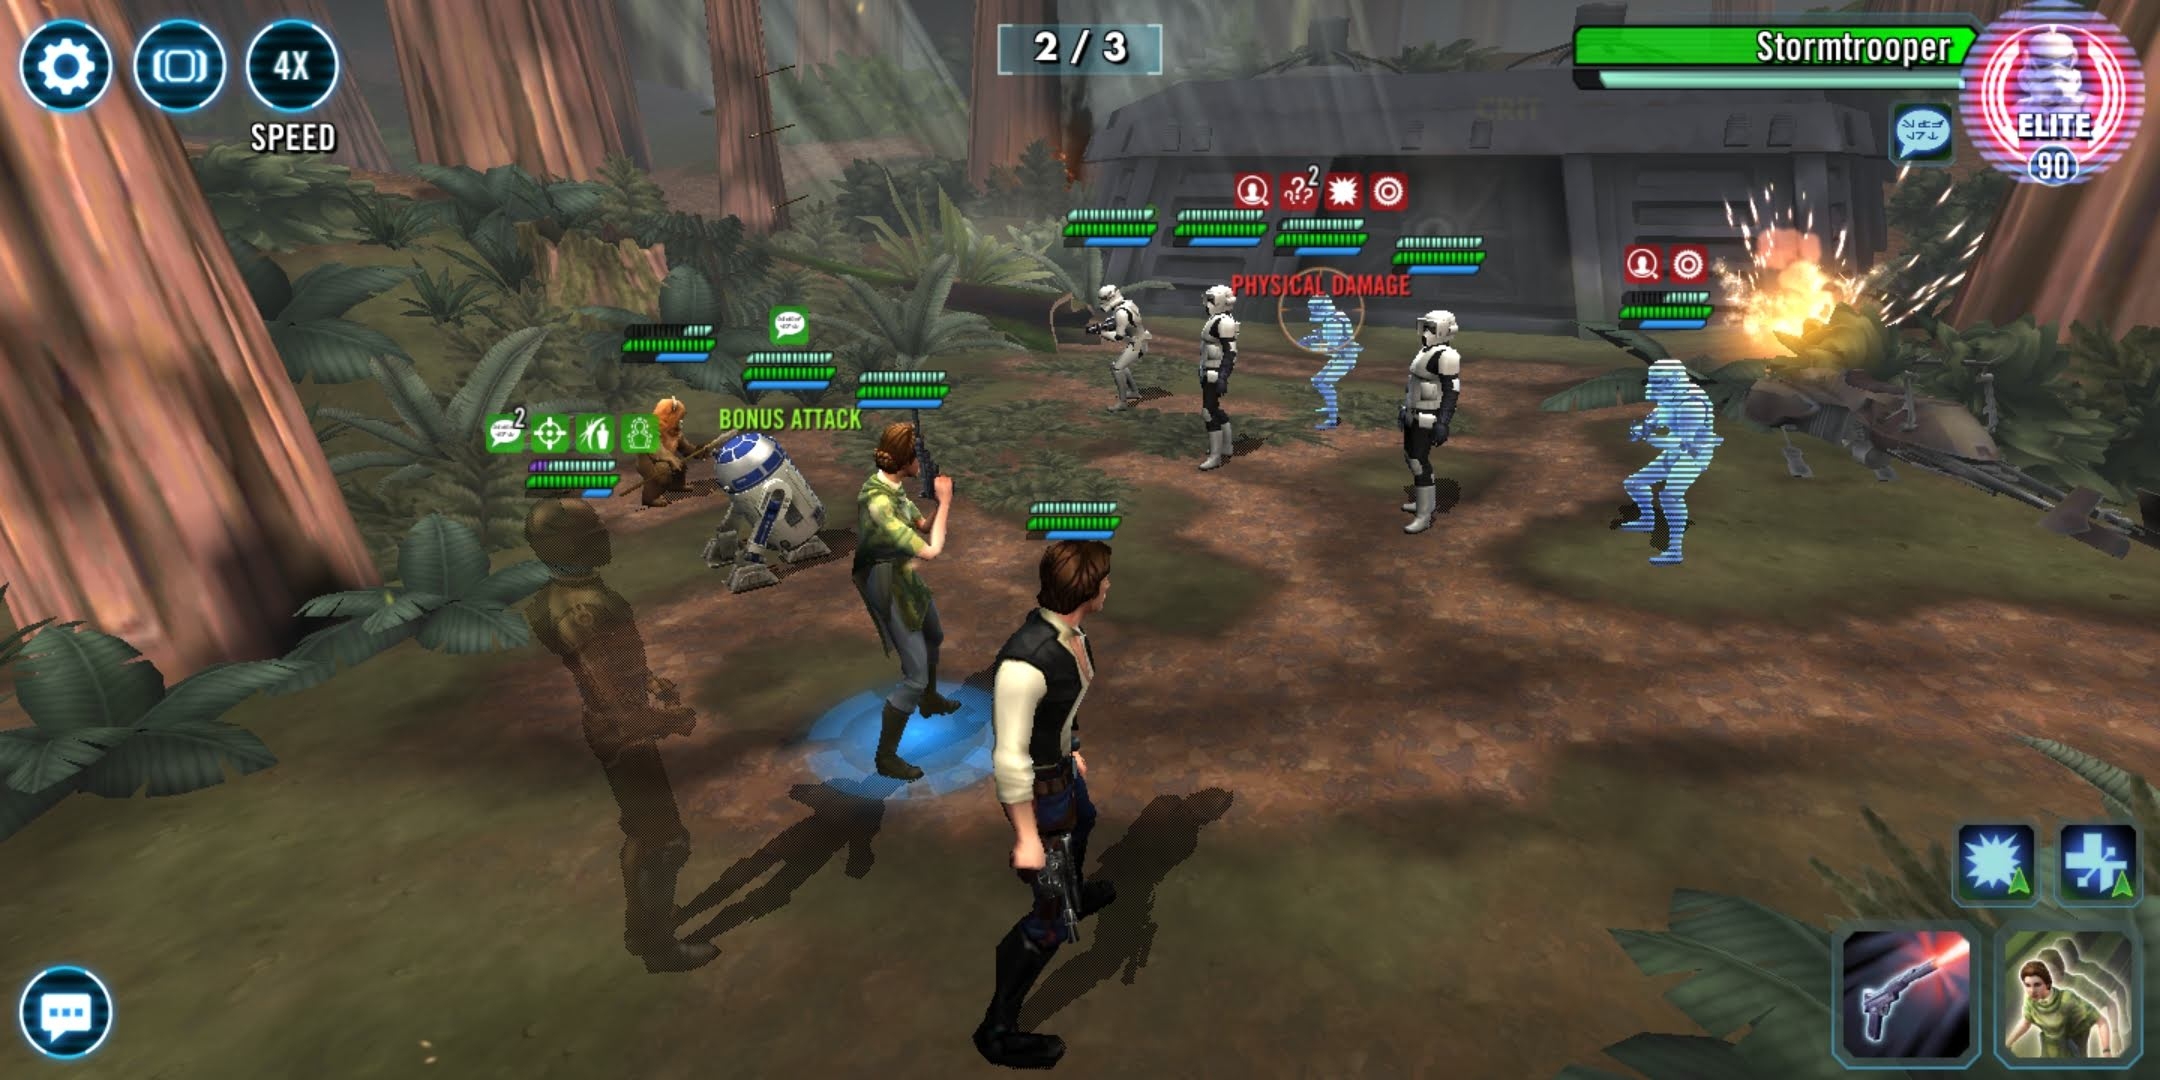 Screenshot_20201119_060546_com.ea.game.starwarscapital_row.jpg